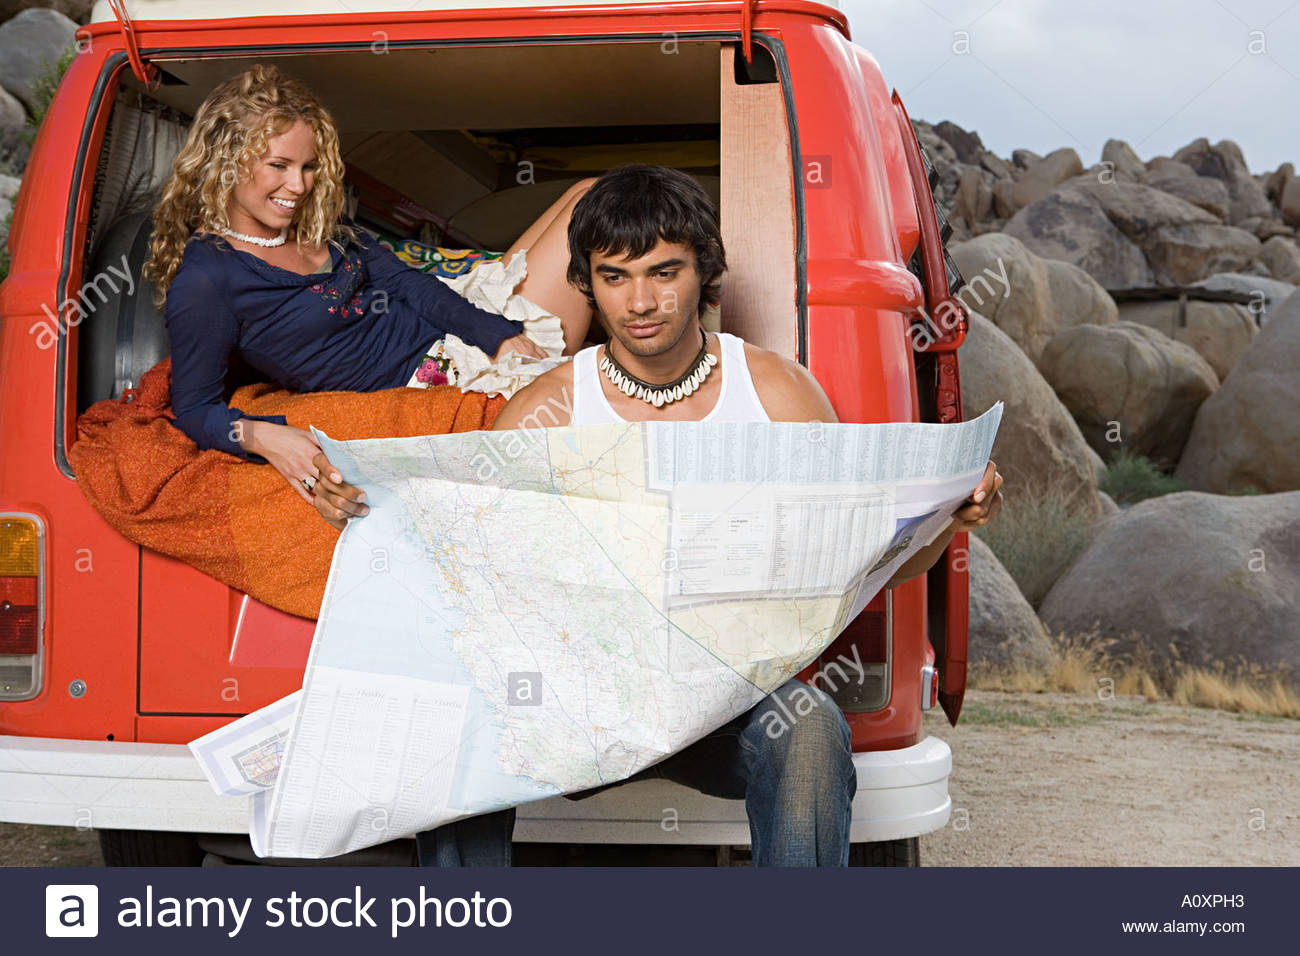 Couple in camper van reading a map - Stock Image